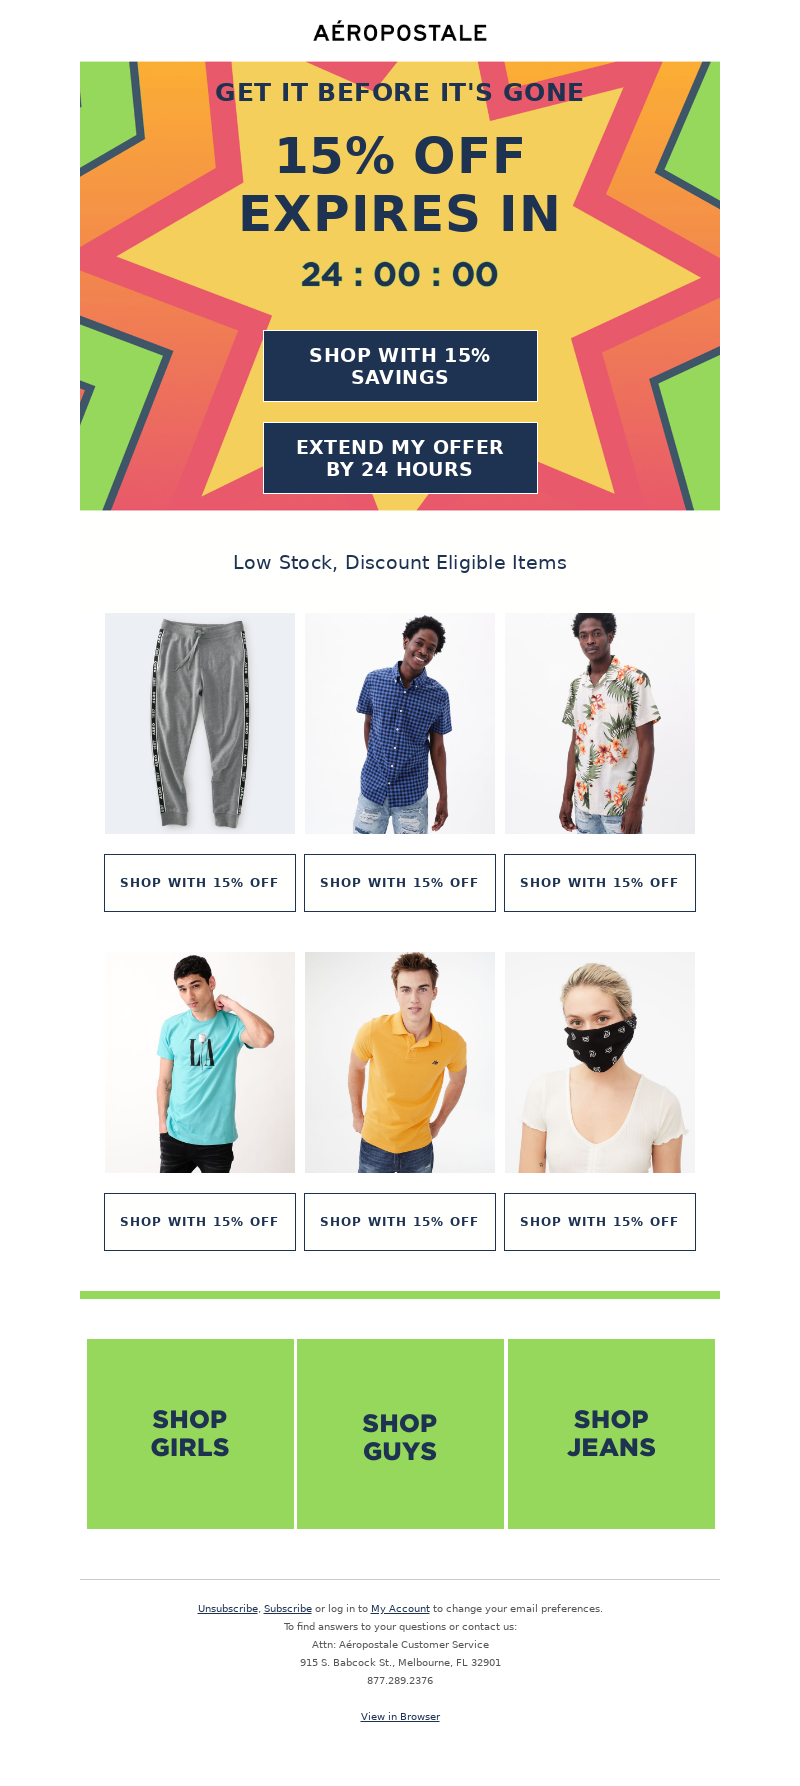 Aeropostale - Your 15% off expires in 24 hours